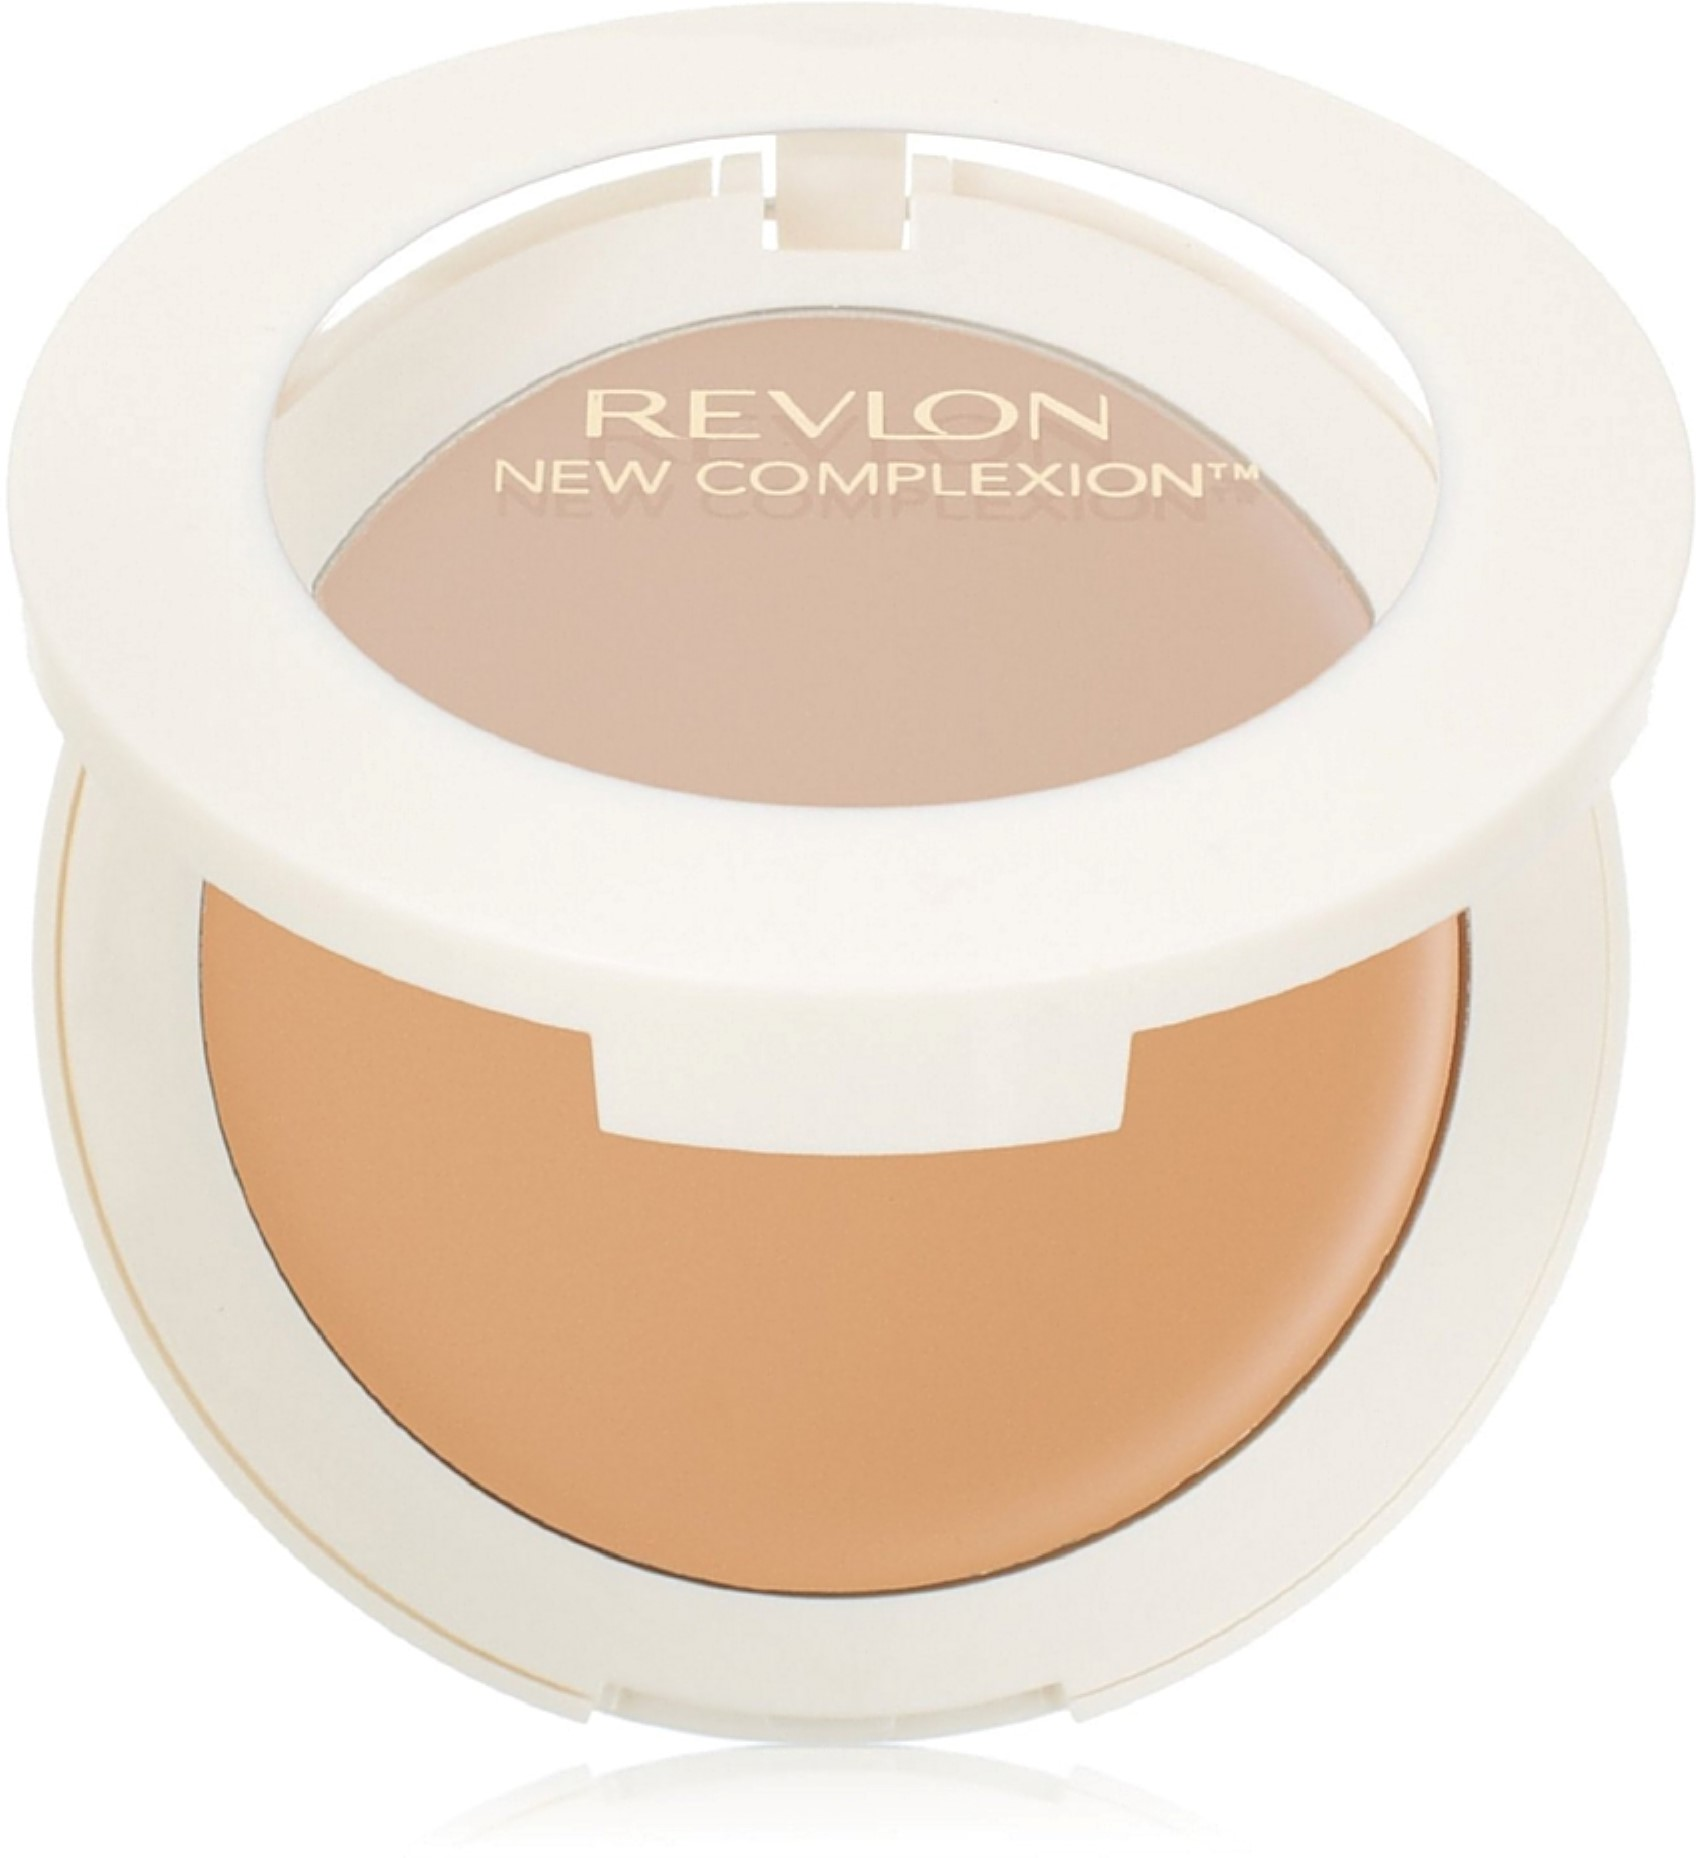 Revlon New Complexion One-Step Compact Makeup, Natural Tan [10] 0.35 oz (Pack of 3)